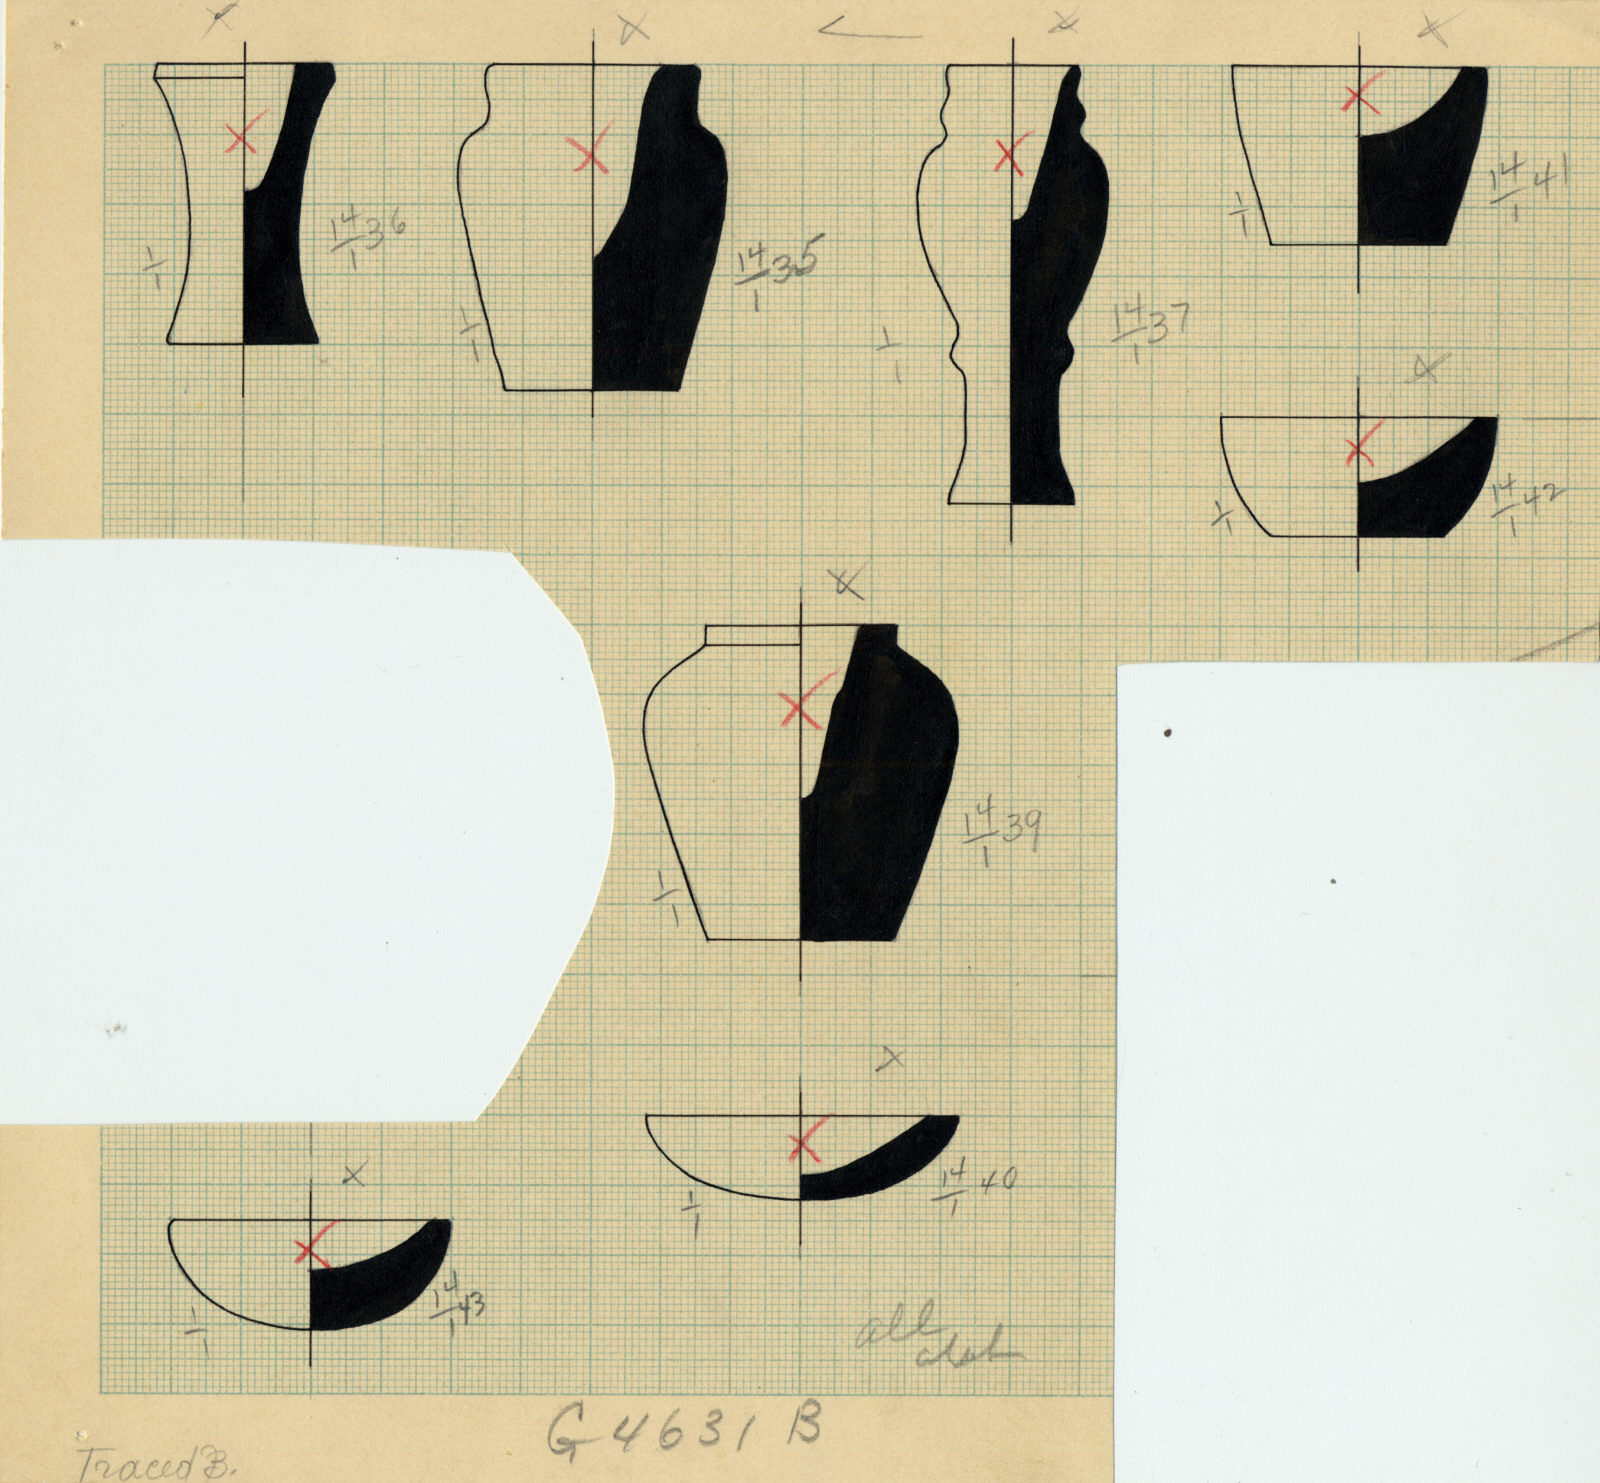 Drawings: G 4631, Shaft B: objects, alabaster